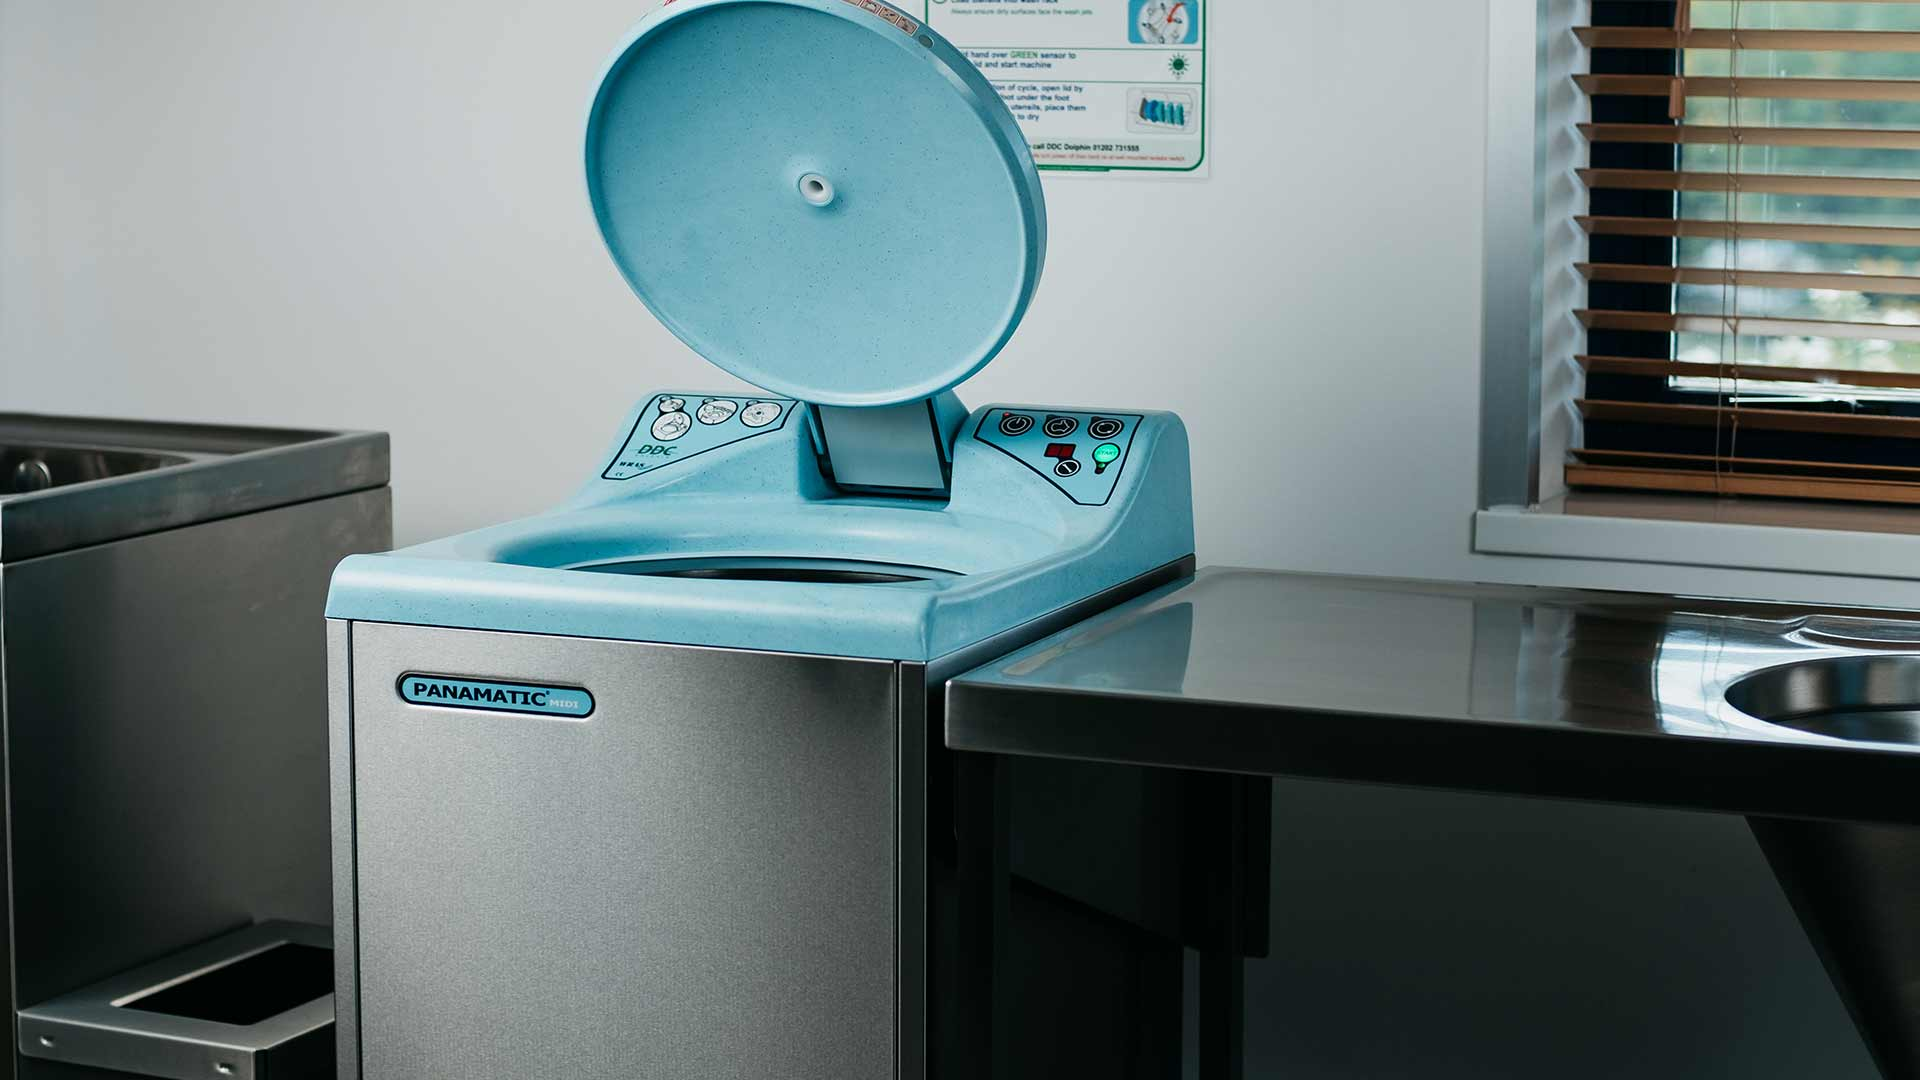 Panamatic Midi Bedpan Washer Banner